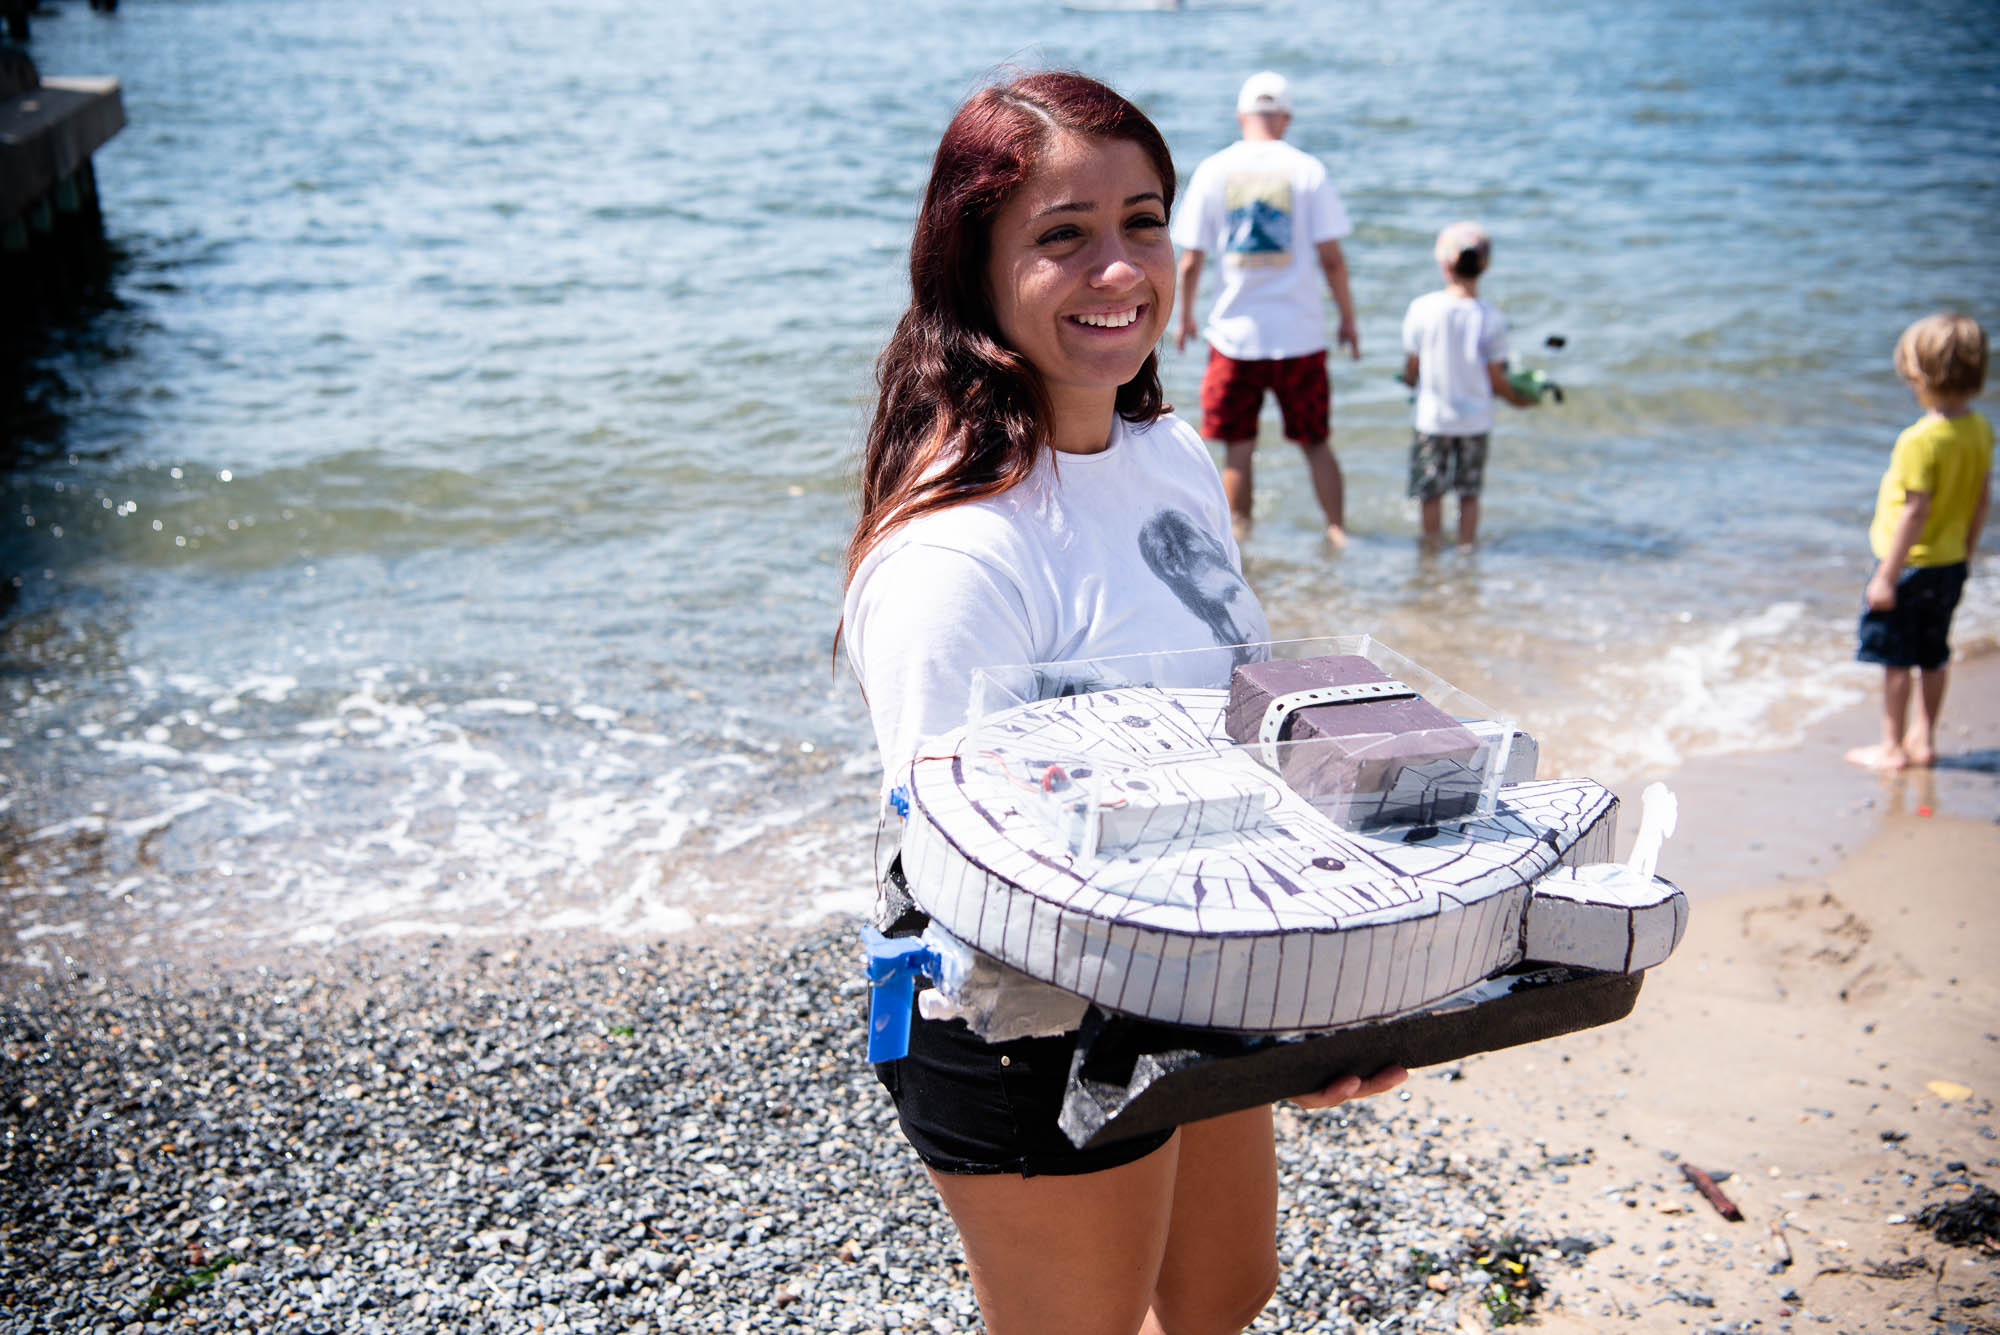 A participant holds their homemade boat, Millennium Falcon, during the Red Hook Regatta on Saturday, August 24, 2019.